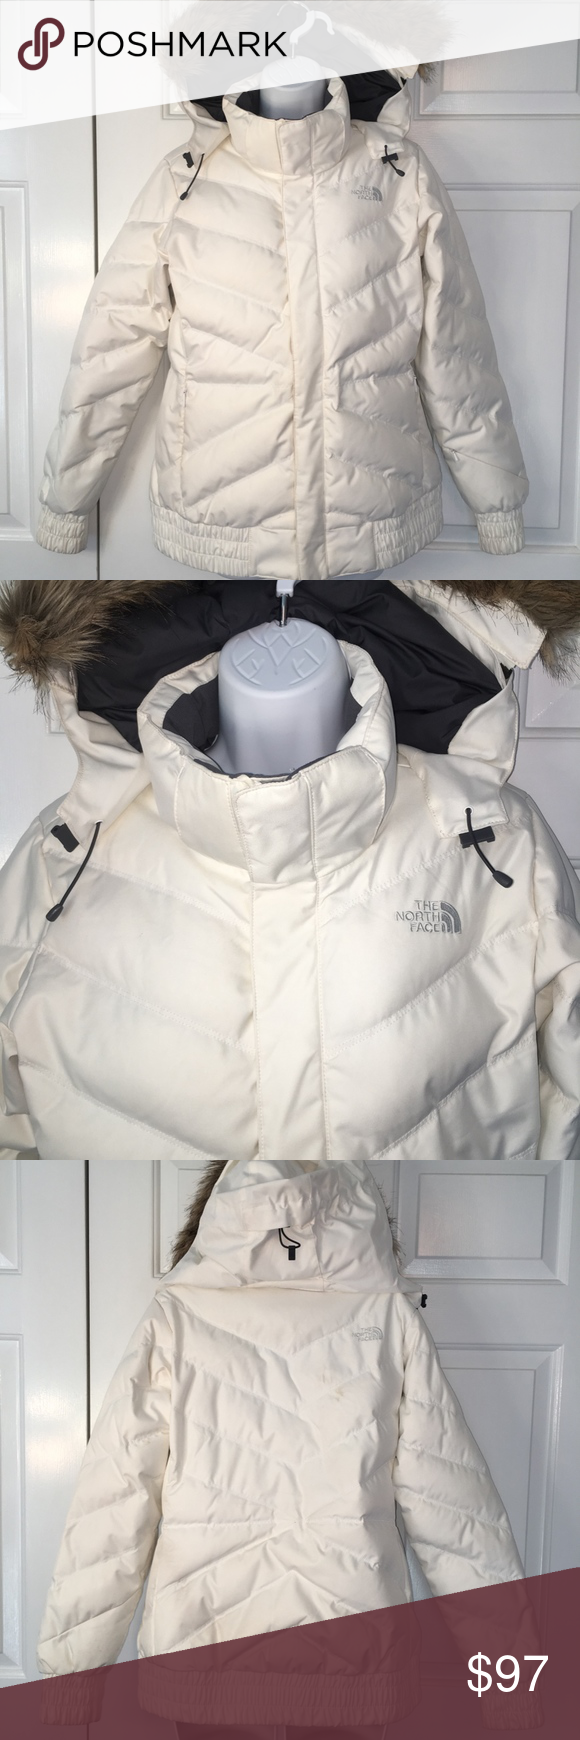 NORTH FACE WOMEN'S DOWN WINTER JACKET | North face women